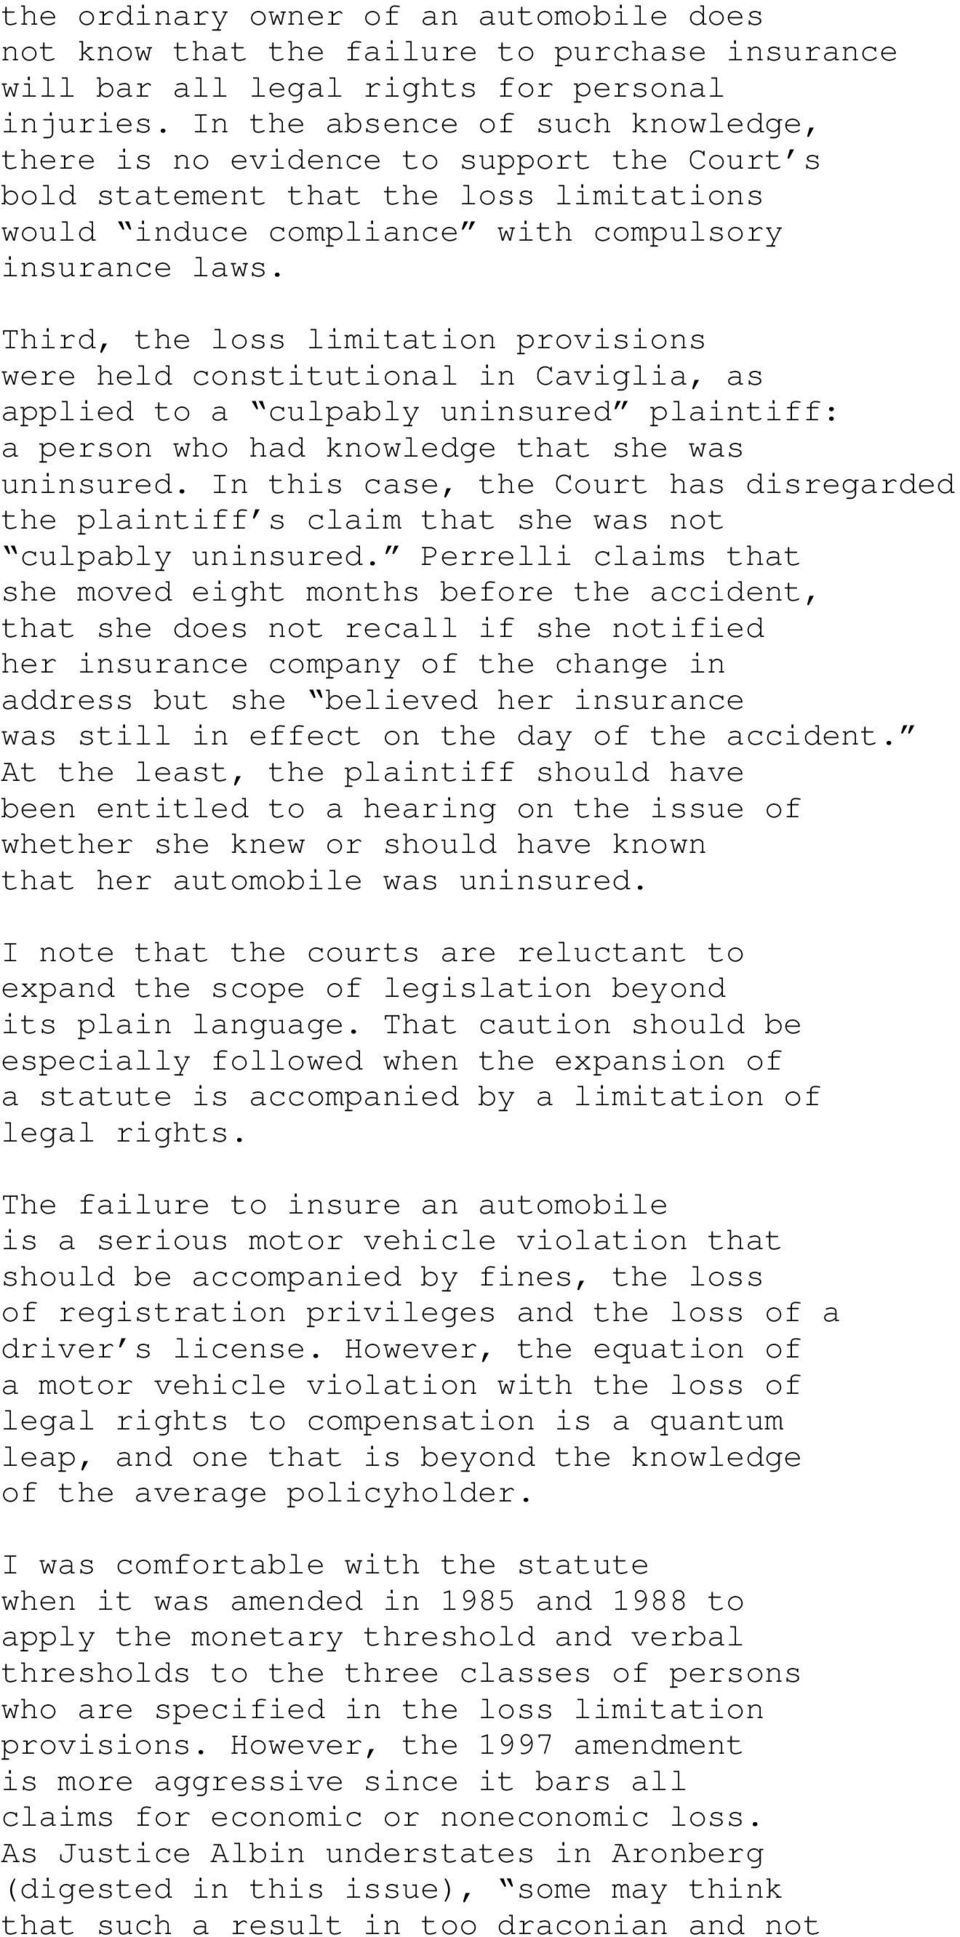 Third, the loss limitation provisions were held constitutional in Caviglia, as applied to a culpably uninsured plaintiff: a person who had knowledge that she was uninsured.